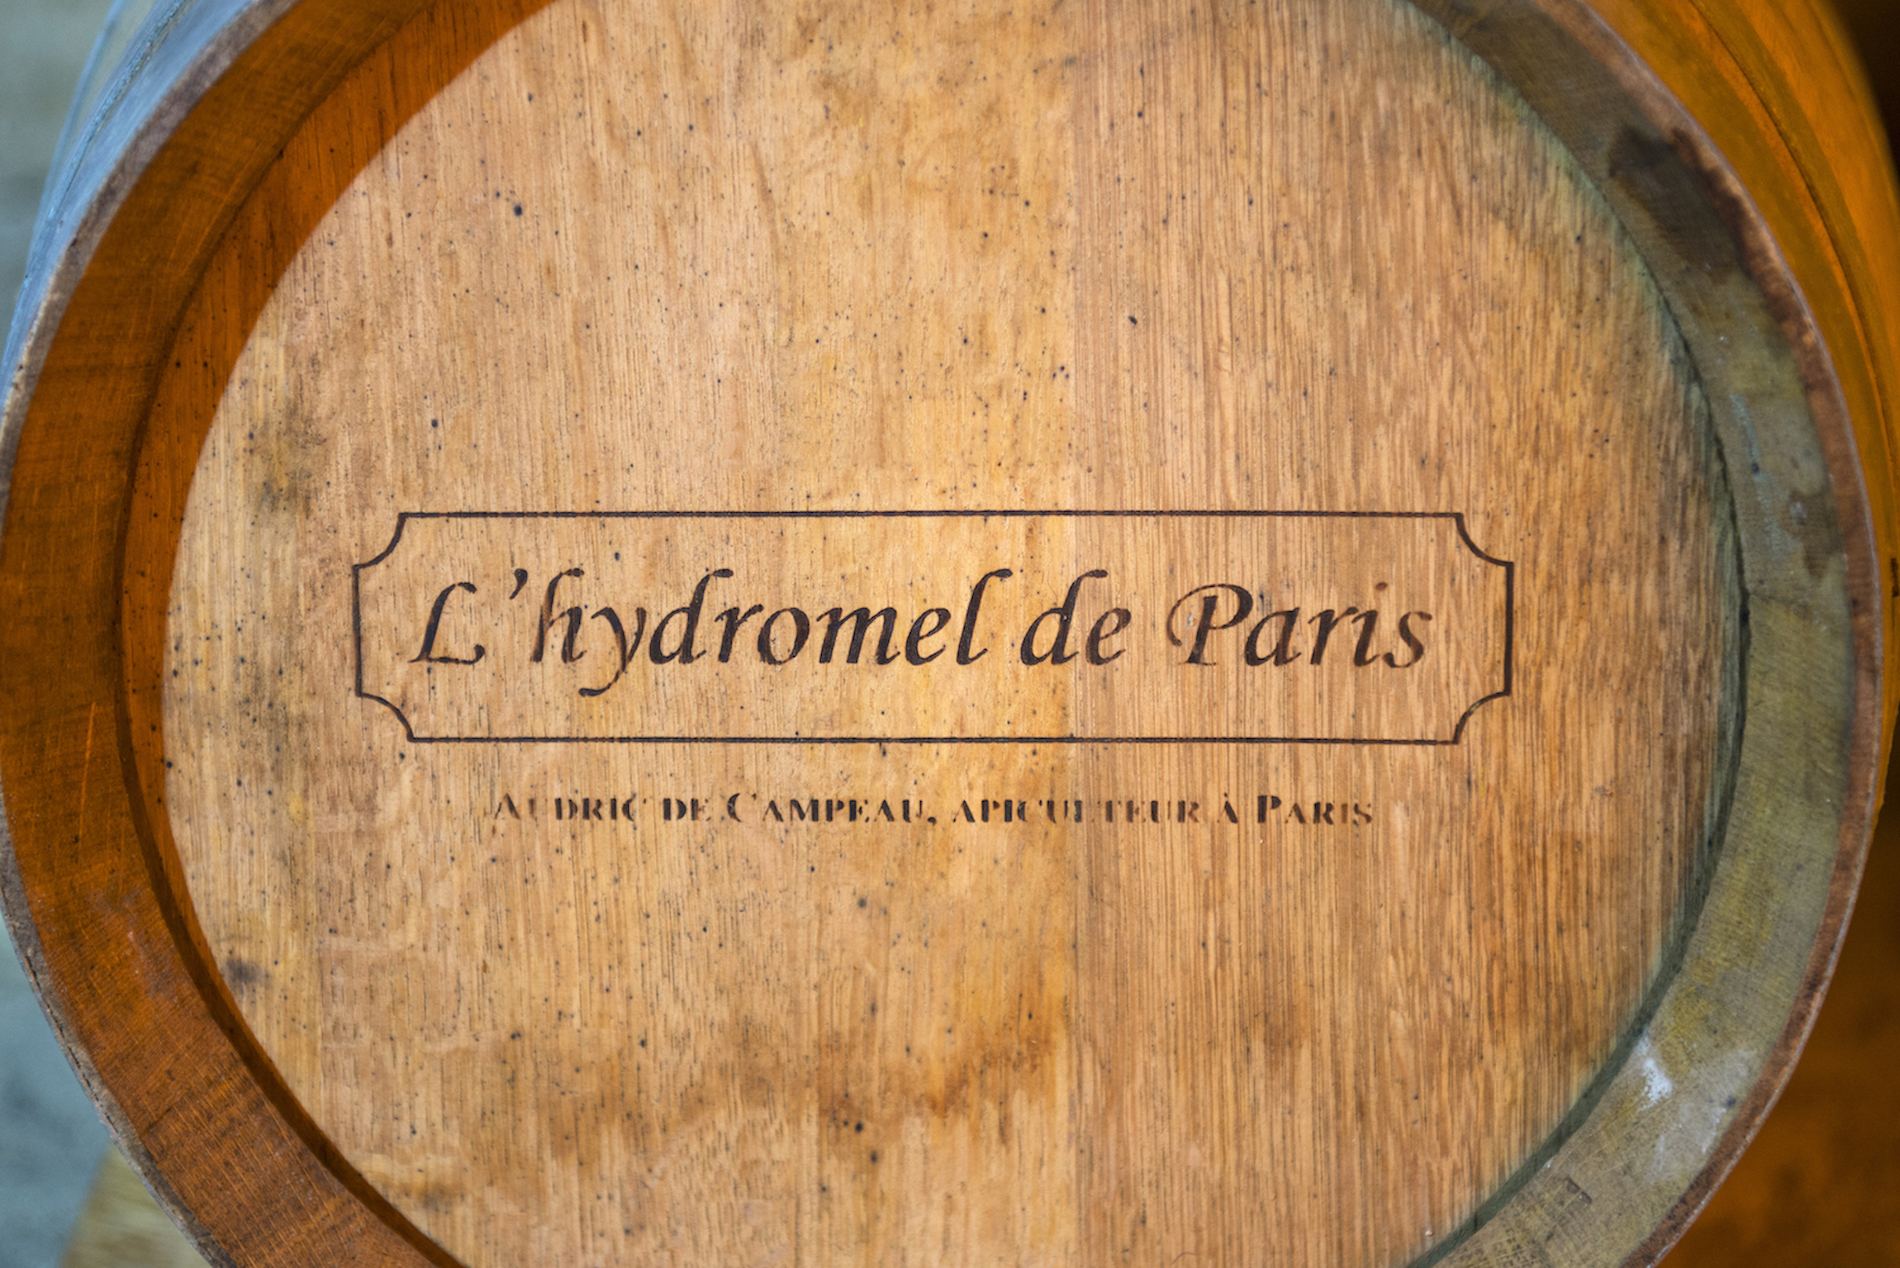 A cult beverage in Paris: Hydromel de Paris